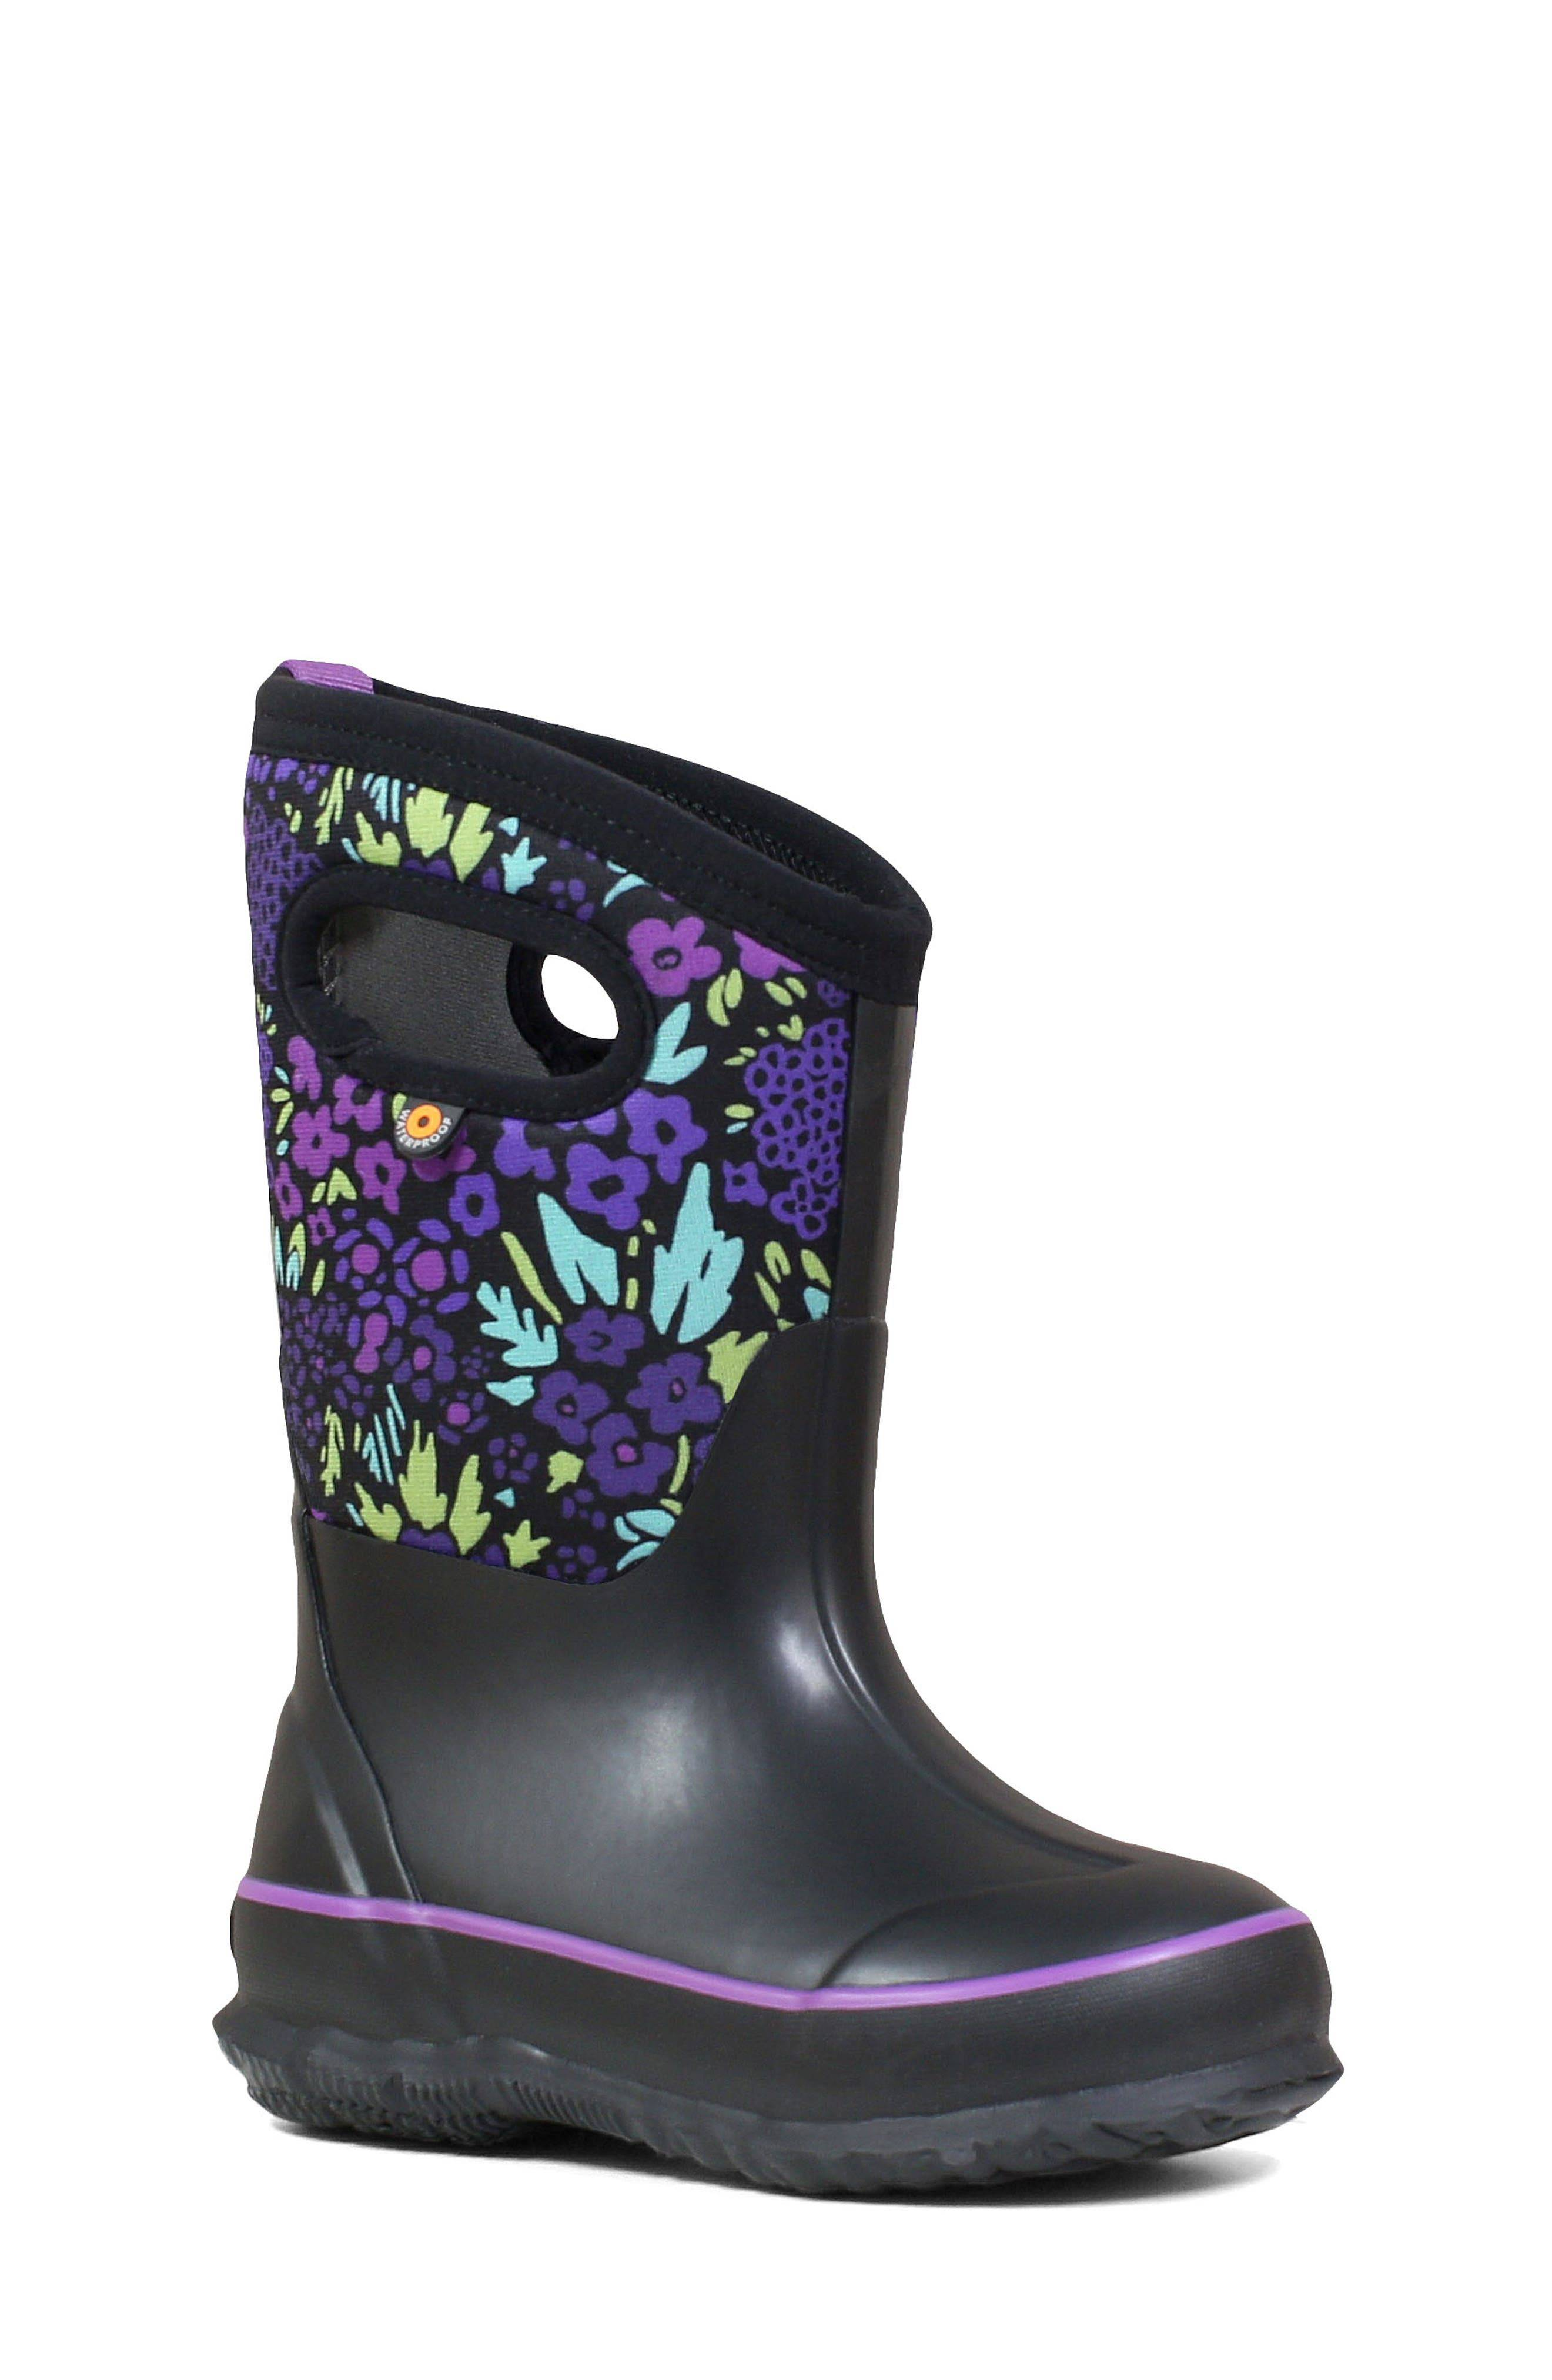 Bogs Girl's Bogs Neo-Classic Garden Insulated Waterproof Boot, Size 2 M - Black